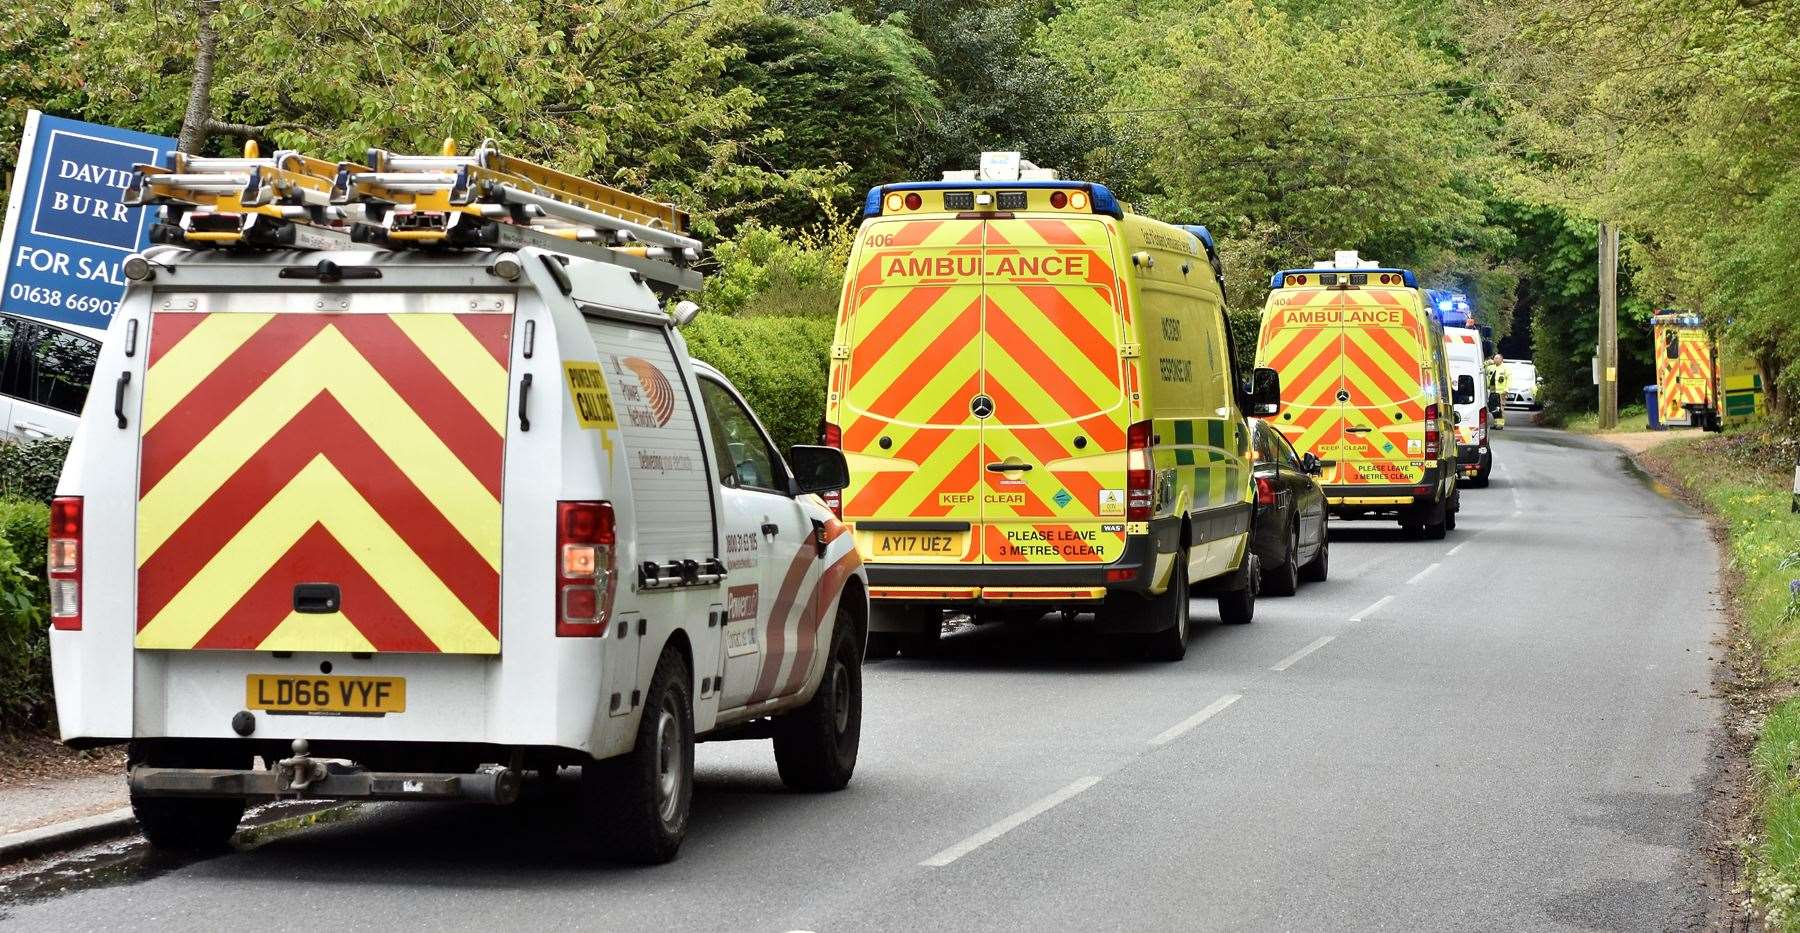 Emergency crews at scene of suspected gas explosion in Lidgate (9806493)